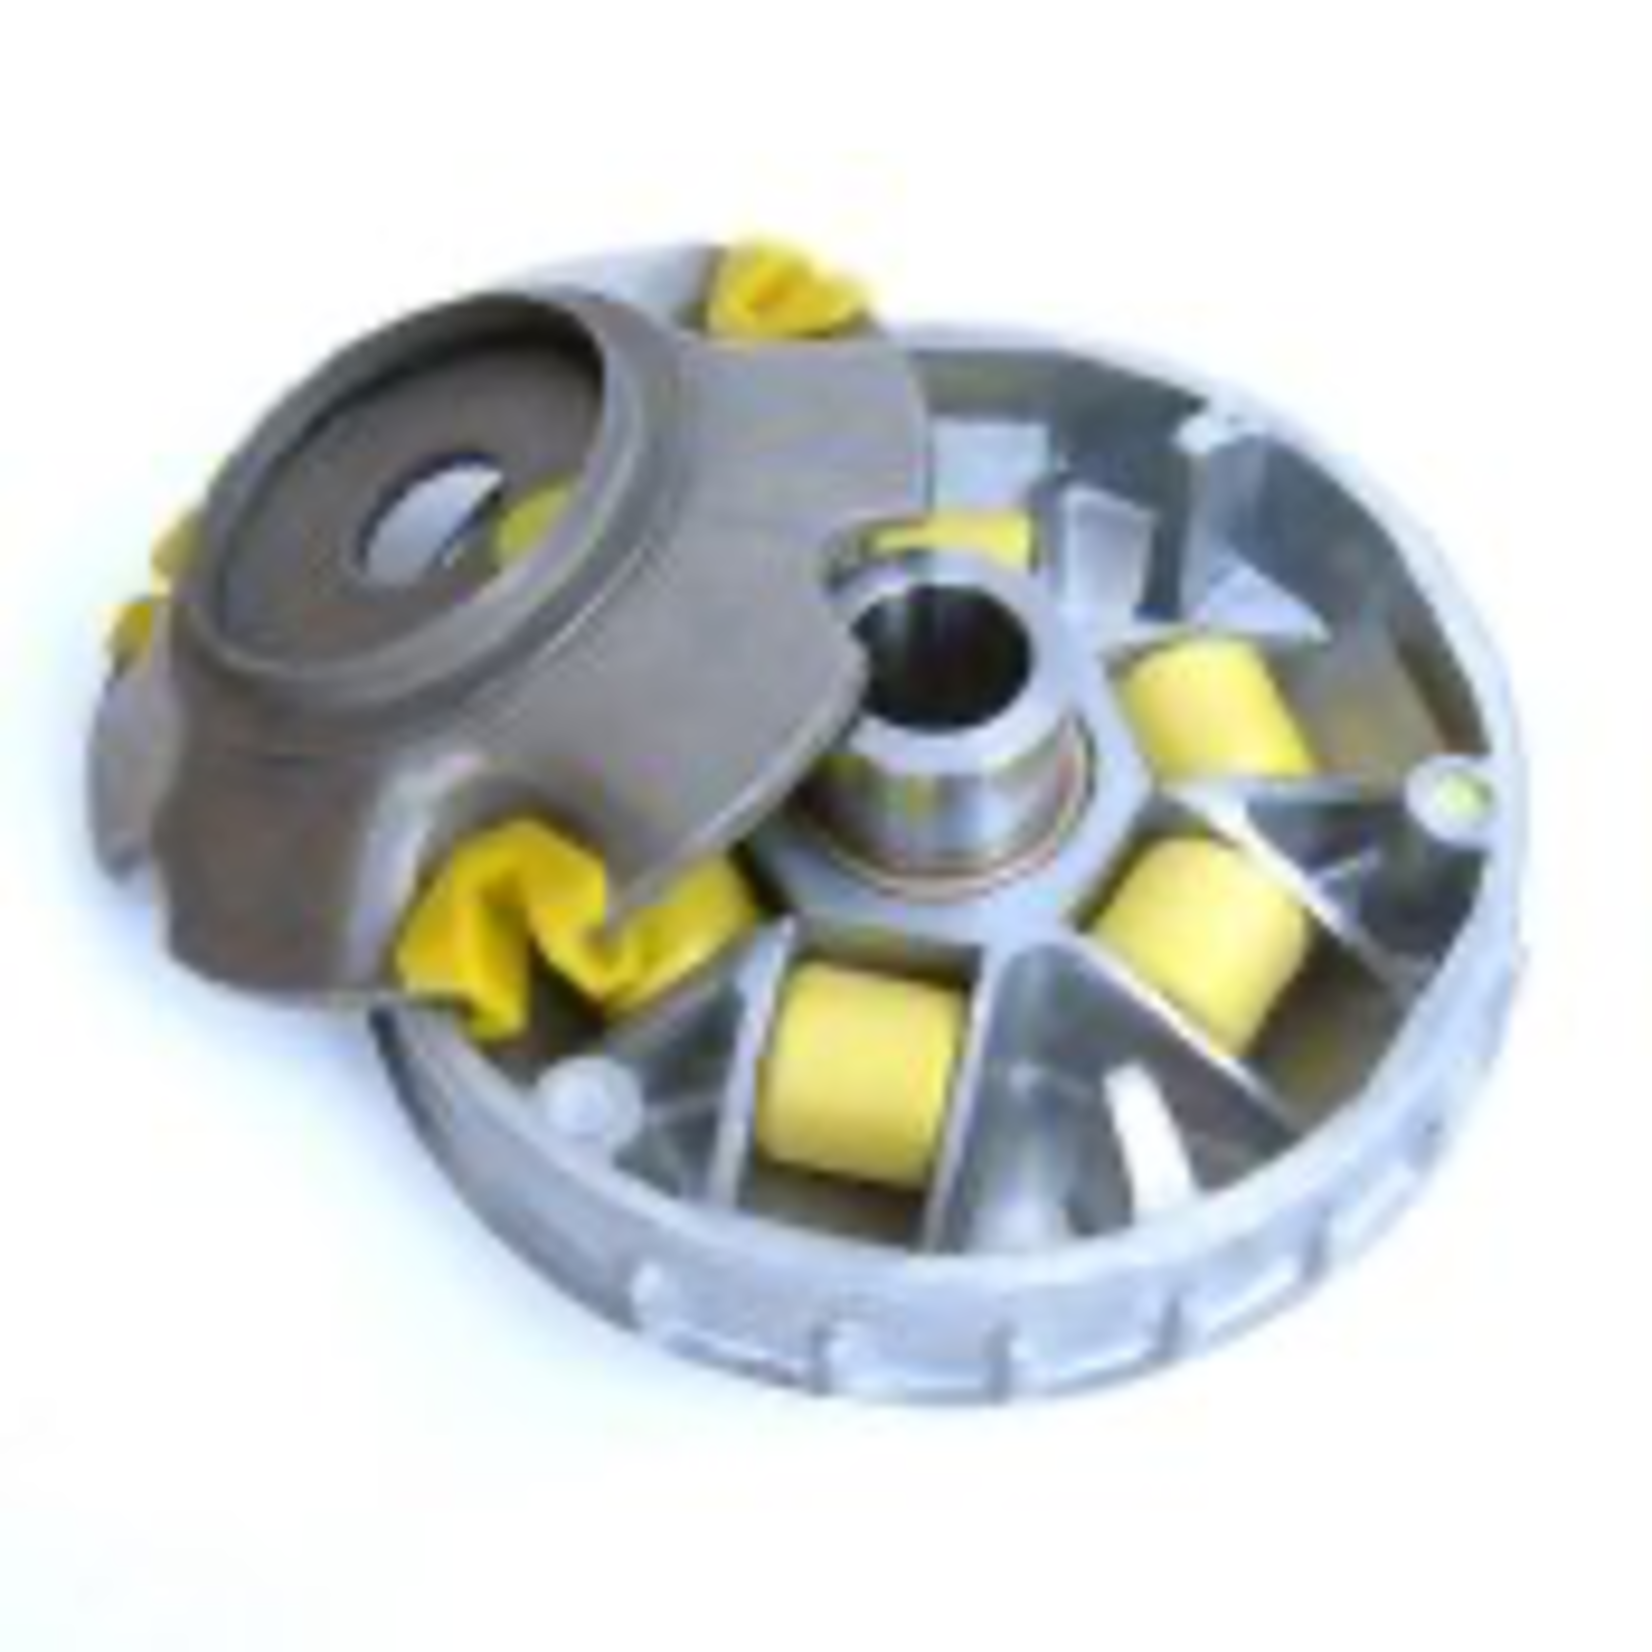 Parts Variator, Primary Inner ET/LX/LXV-150 (Incl.Rollers and Shoes)